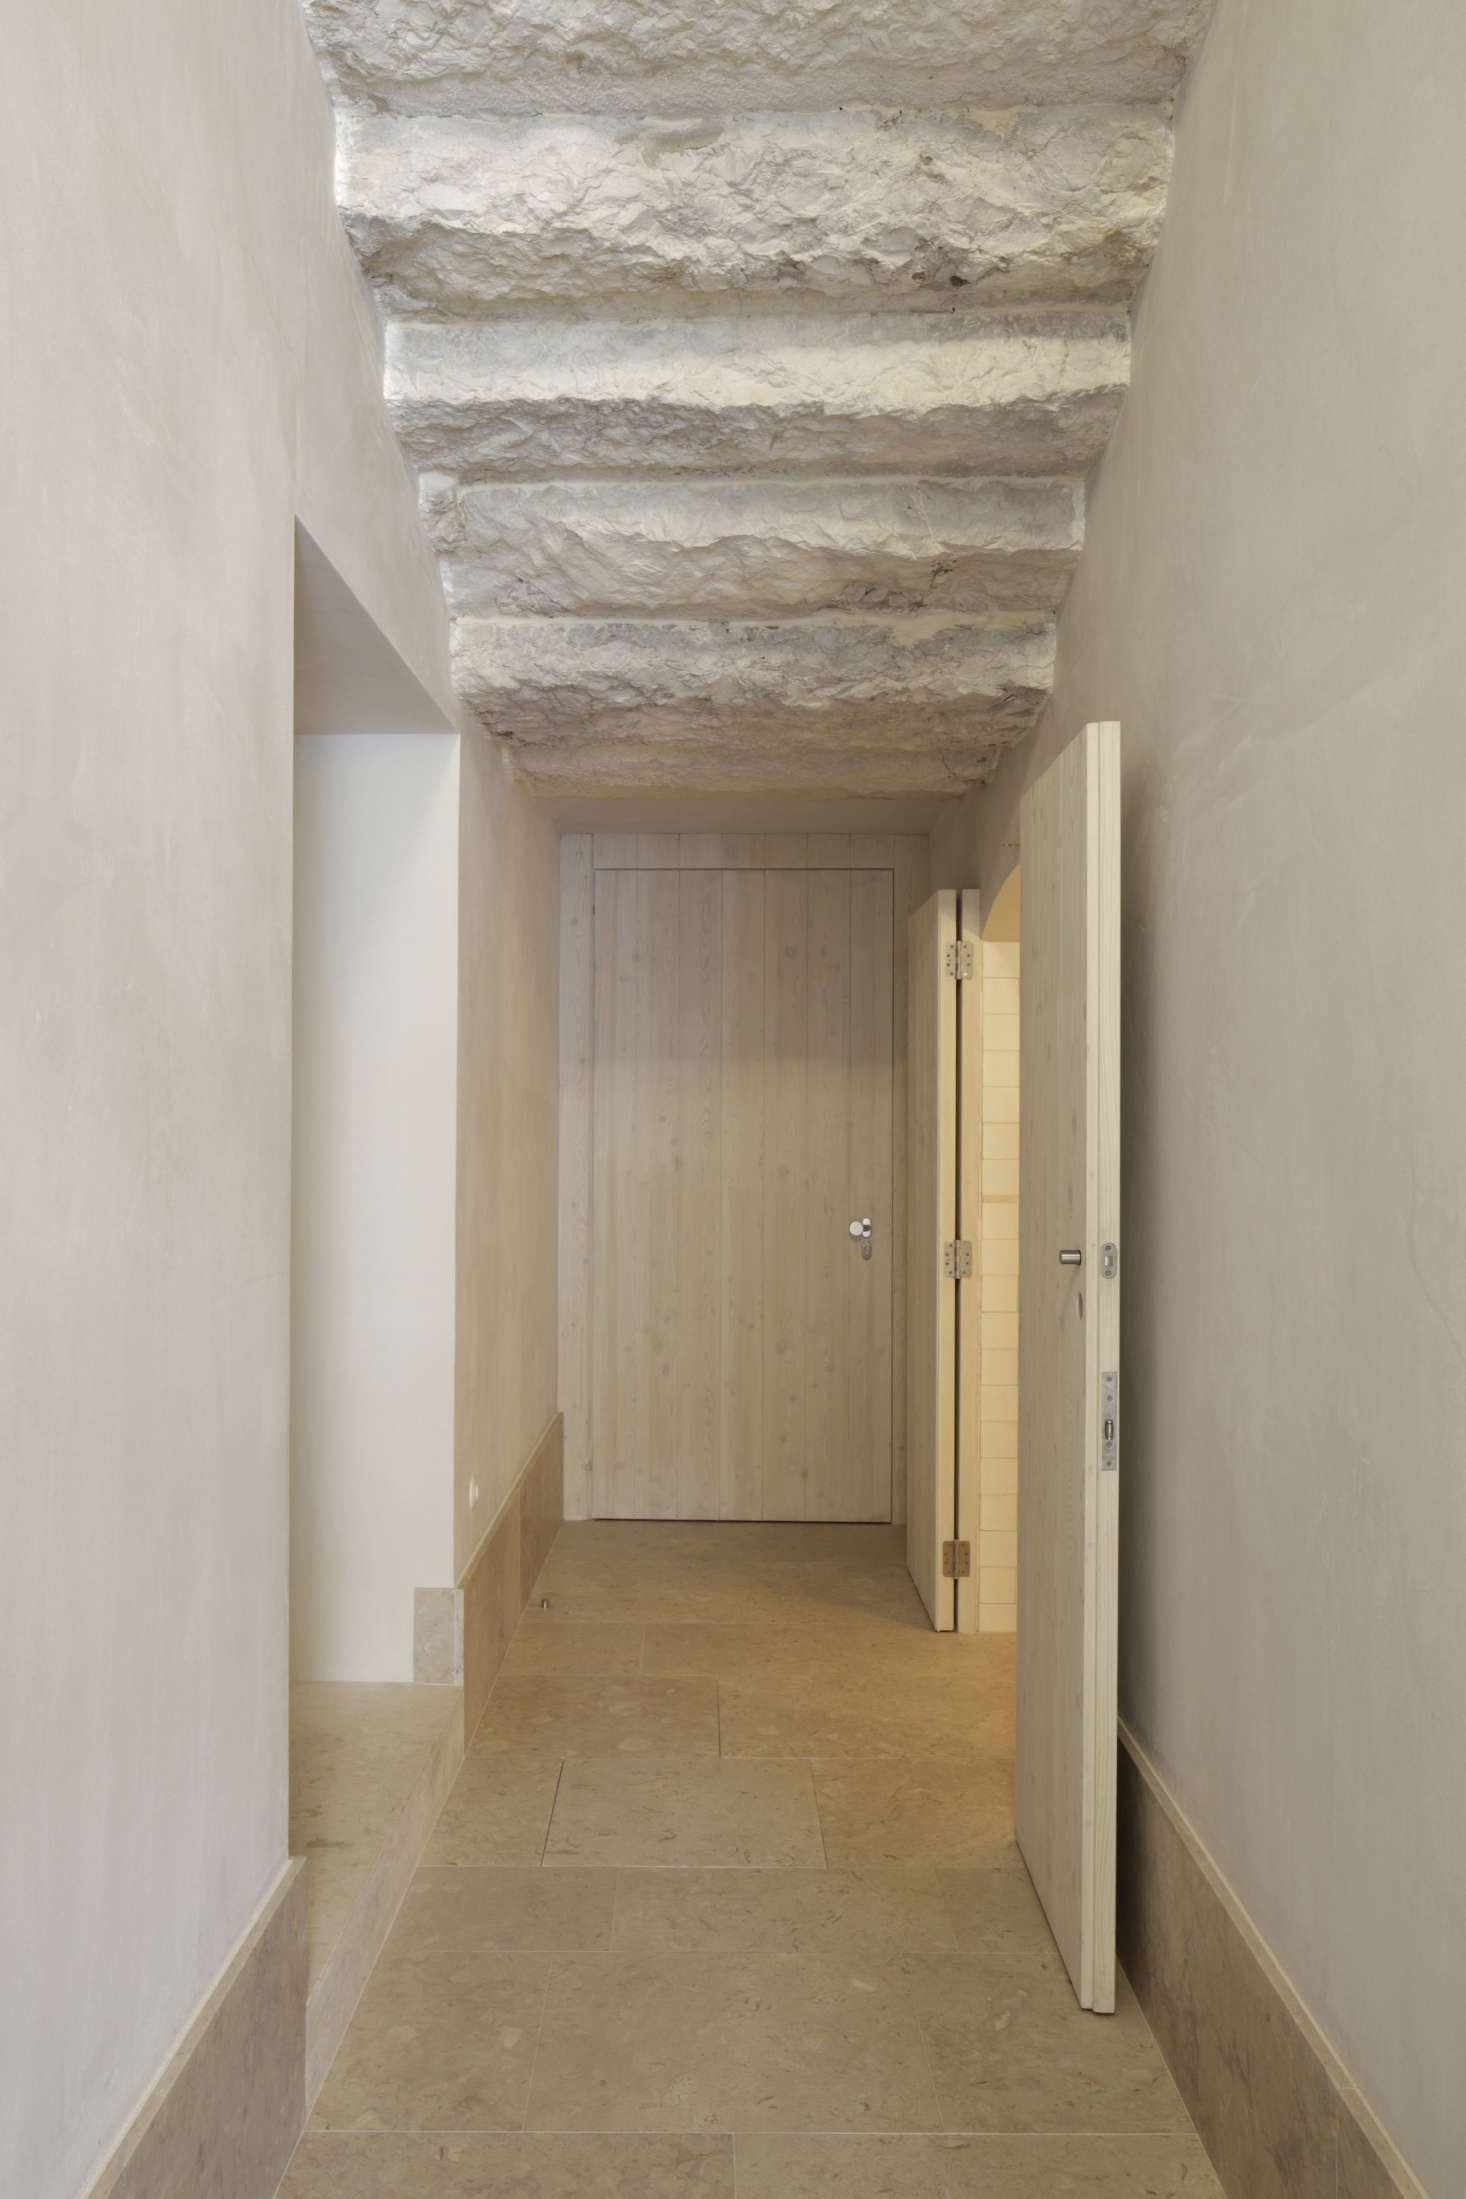 To maintain continuity with the 1728 building while modernizing the interior, the architect used materials traditional to Lisbon's oldest palaces and churches, including limestone, wood, and hand-cut tile.